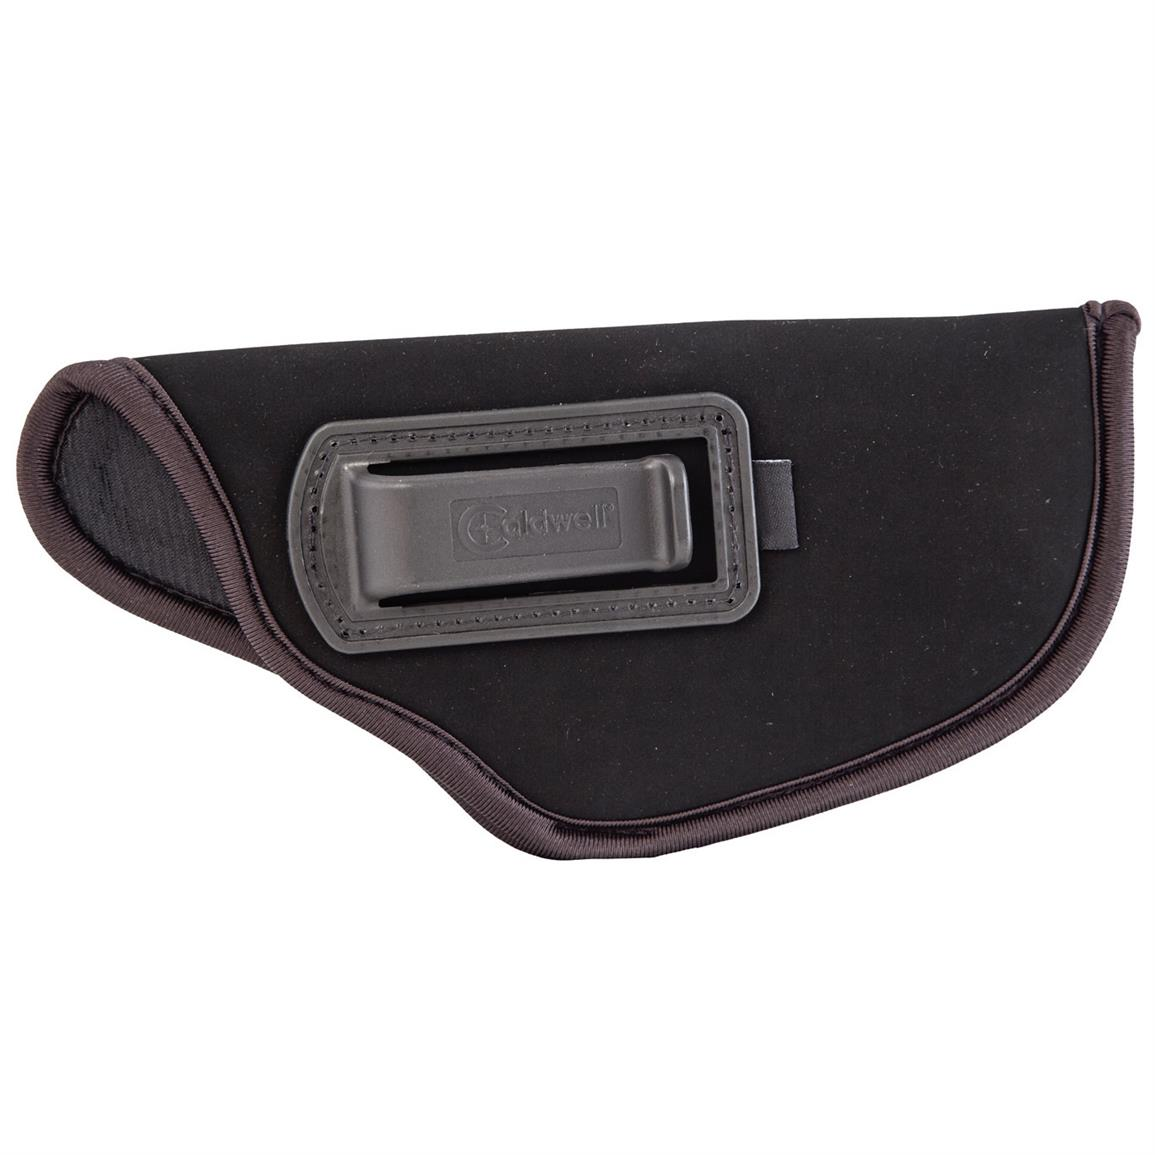 "Clip accommodates belts up to 2"" wide"